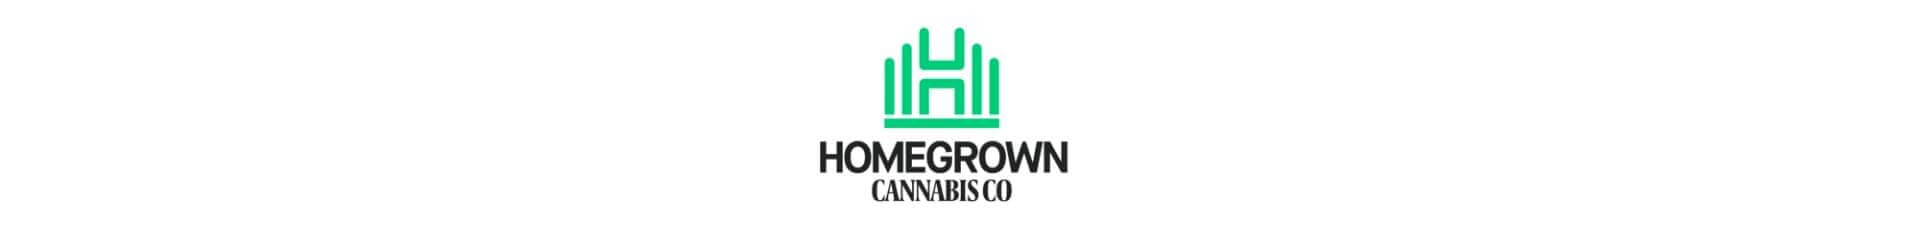 homegrown logo